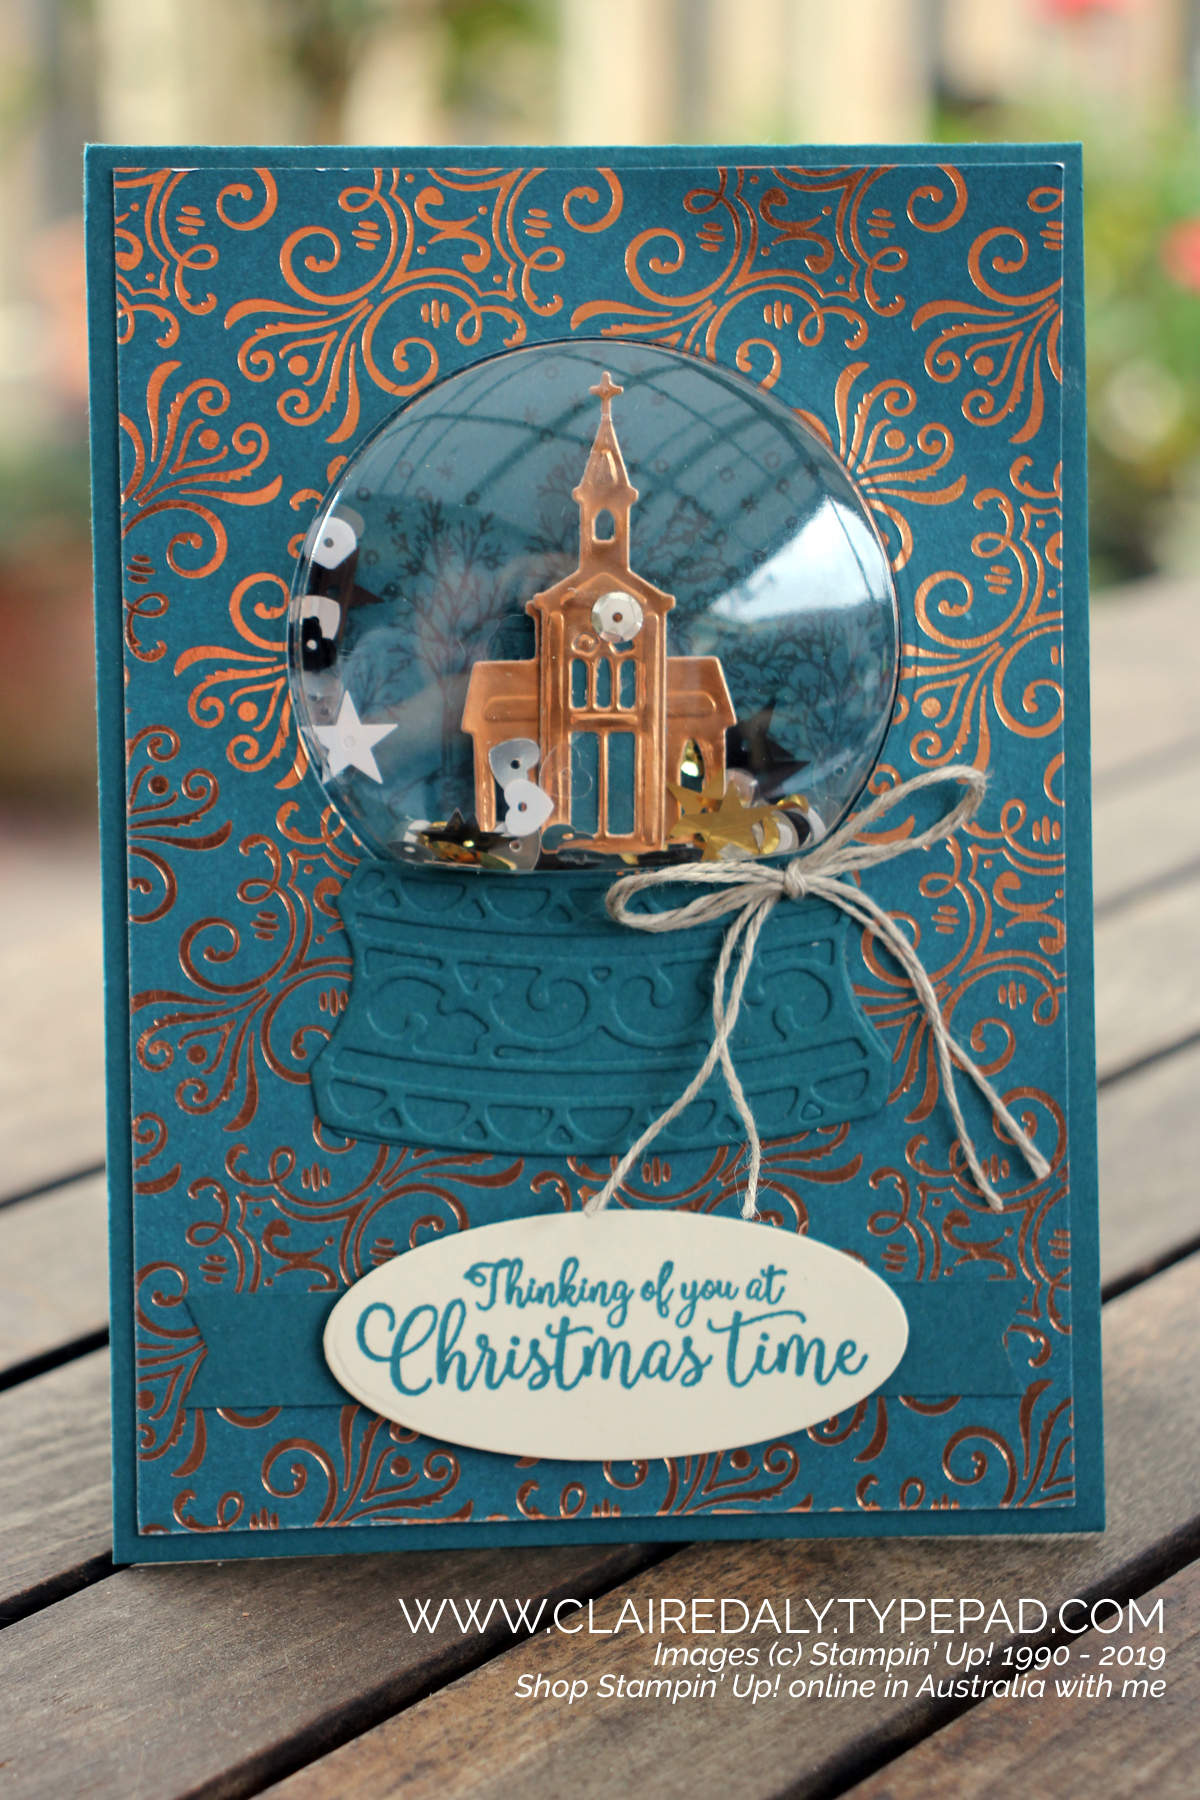 Handmade Cards Using 2020 Christmas Dsp From Stampin Up Stampin' Up! Australia: Claire Daly Independent Demonstrator